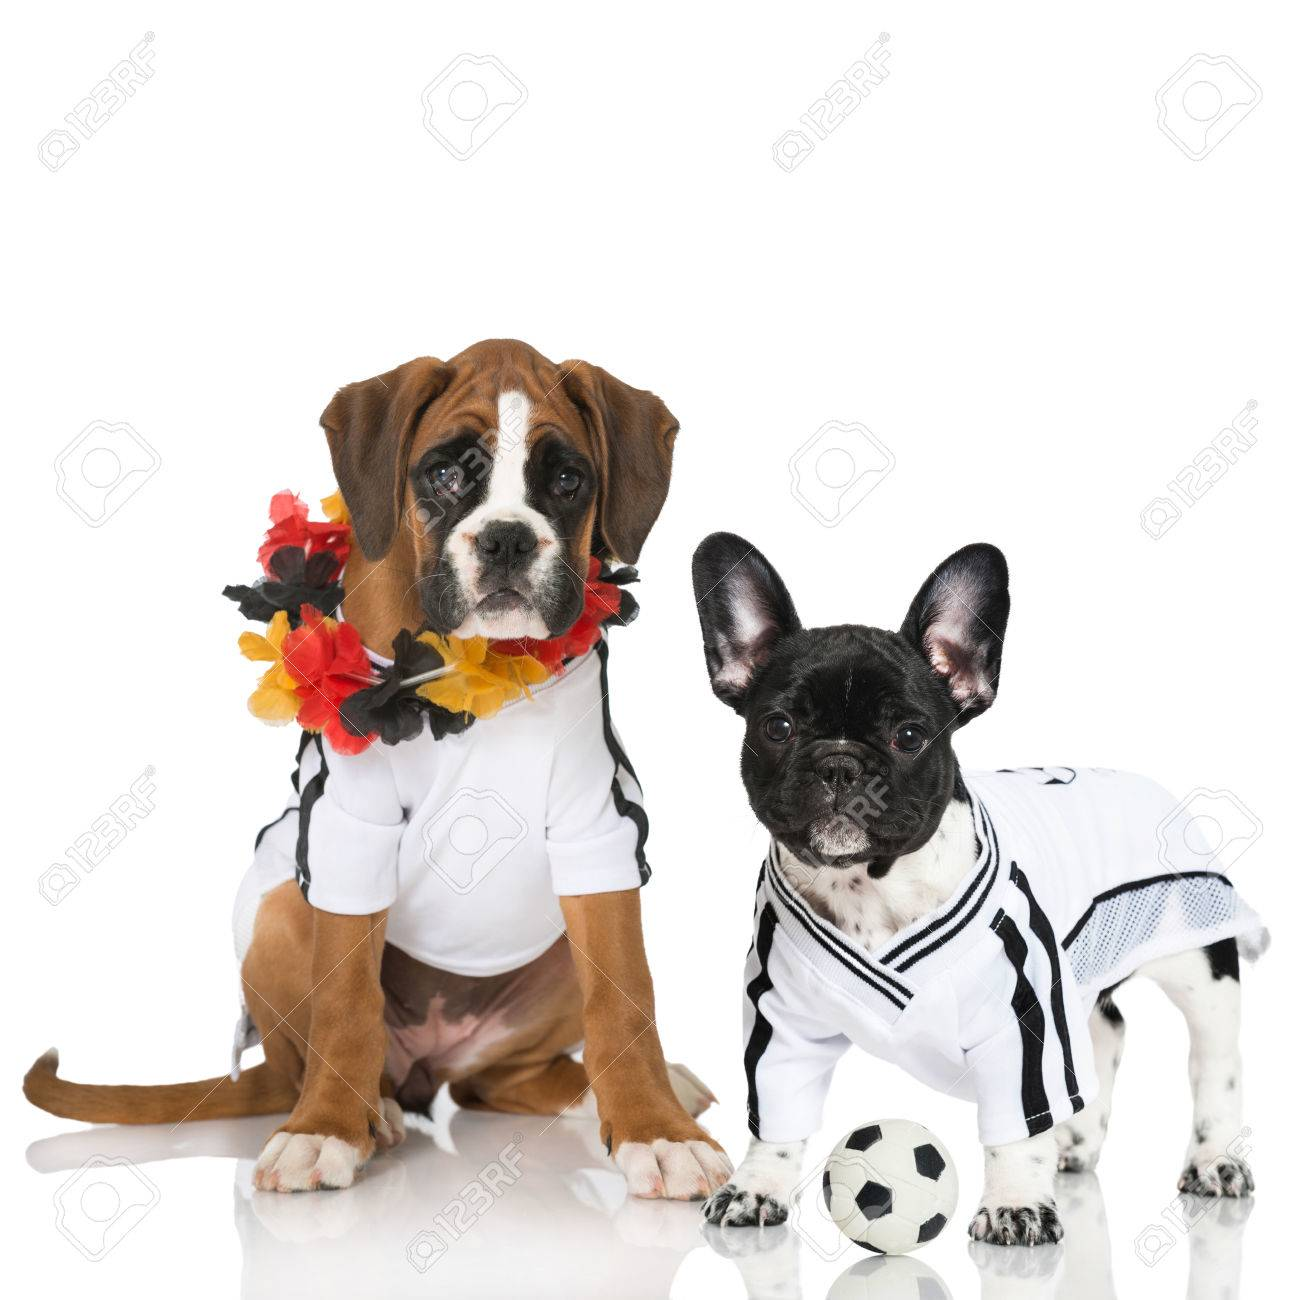 Puppies in football jersey isolated on white Stock Photo - 34736789 70e23ce95